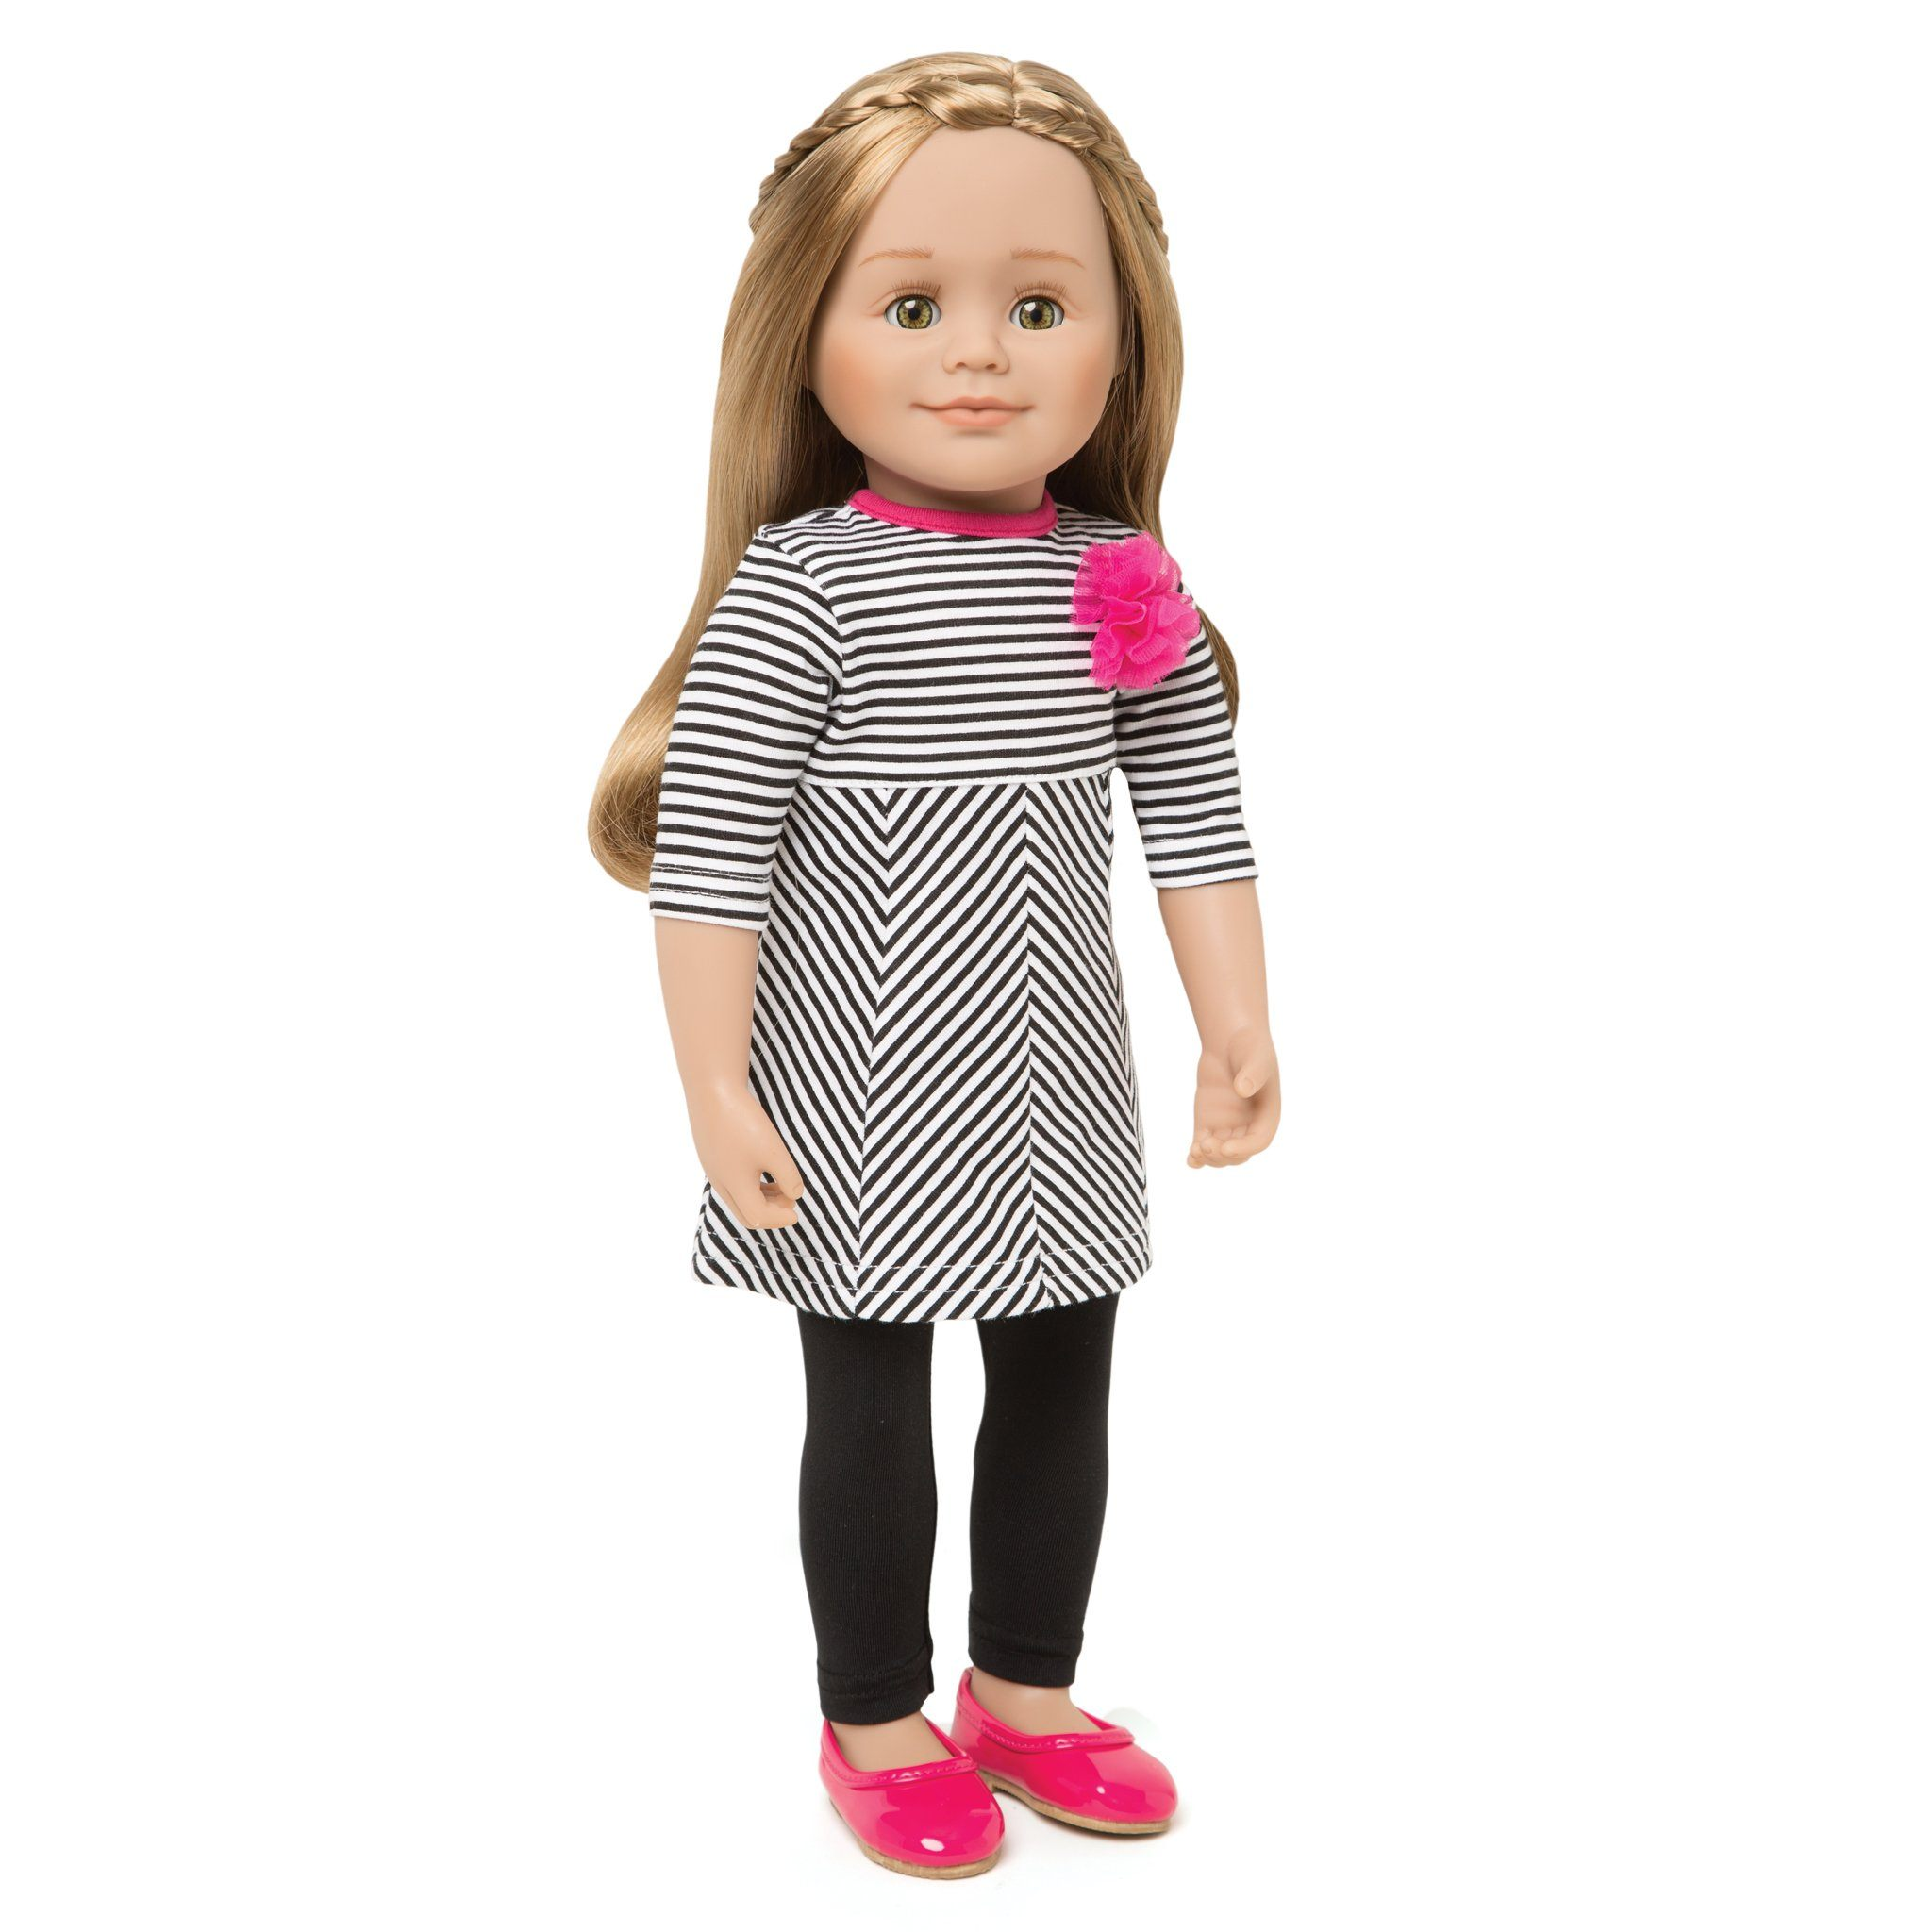 Ile de passage black and white striped dress with fuchsia pink flower detail, black tights, and bright pink shiny flats. Fits all 18 inch dolls.